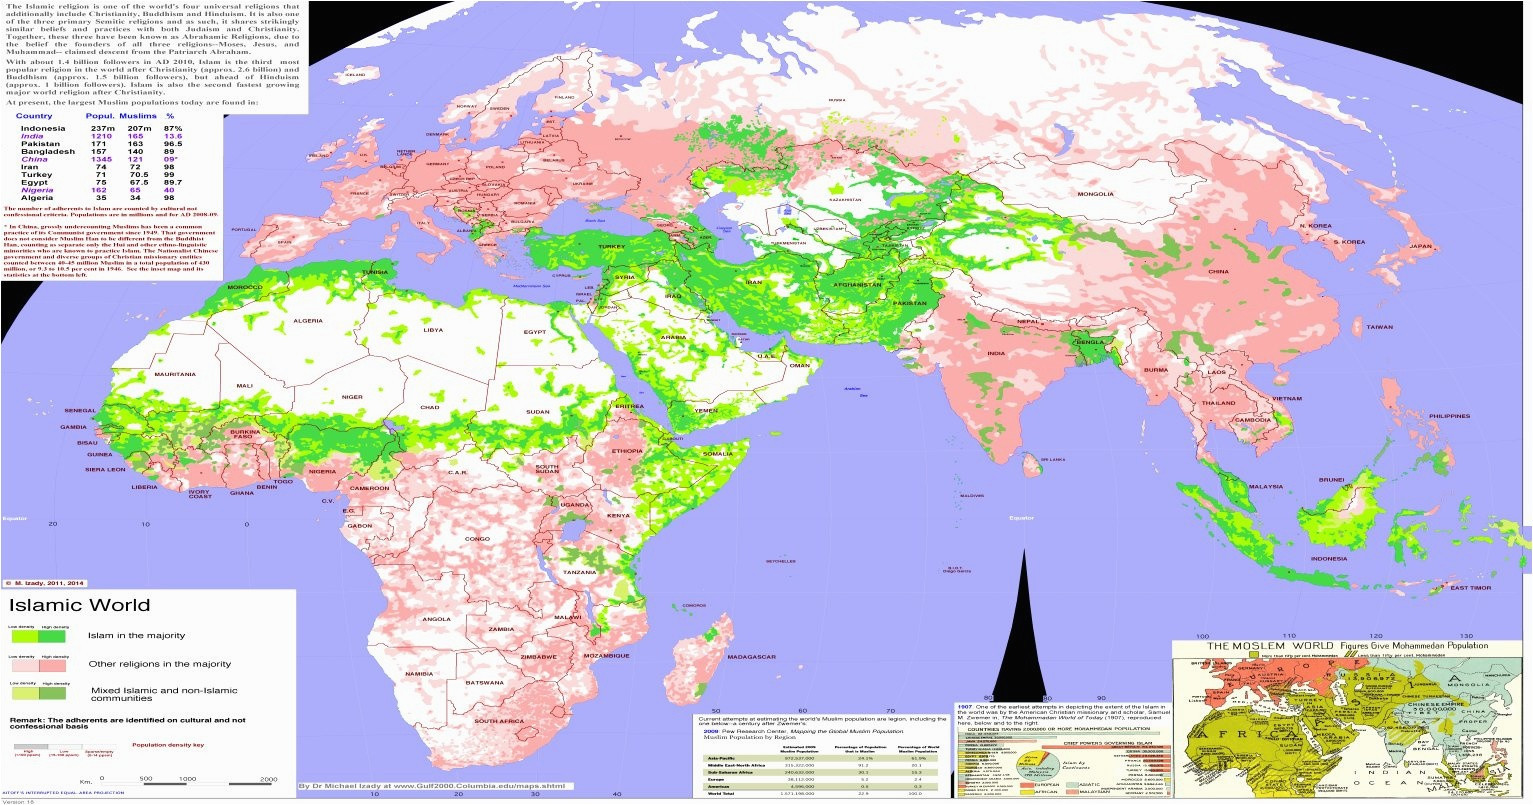 Picture the World Map World Map Europe Best Index Statistics Explained 0 0d Nuvi